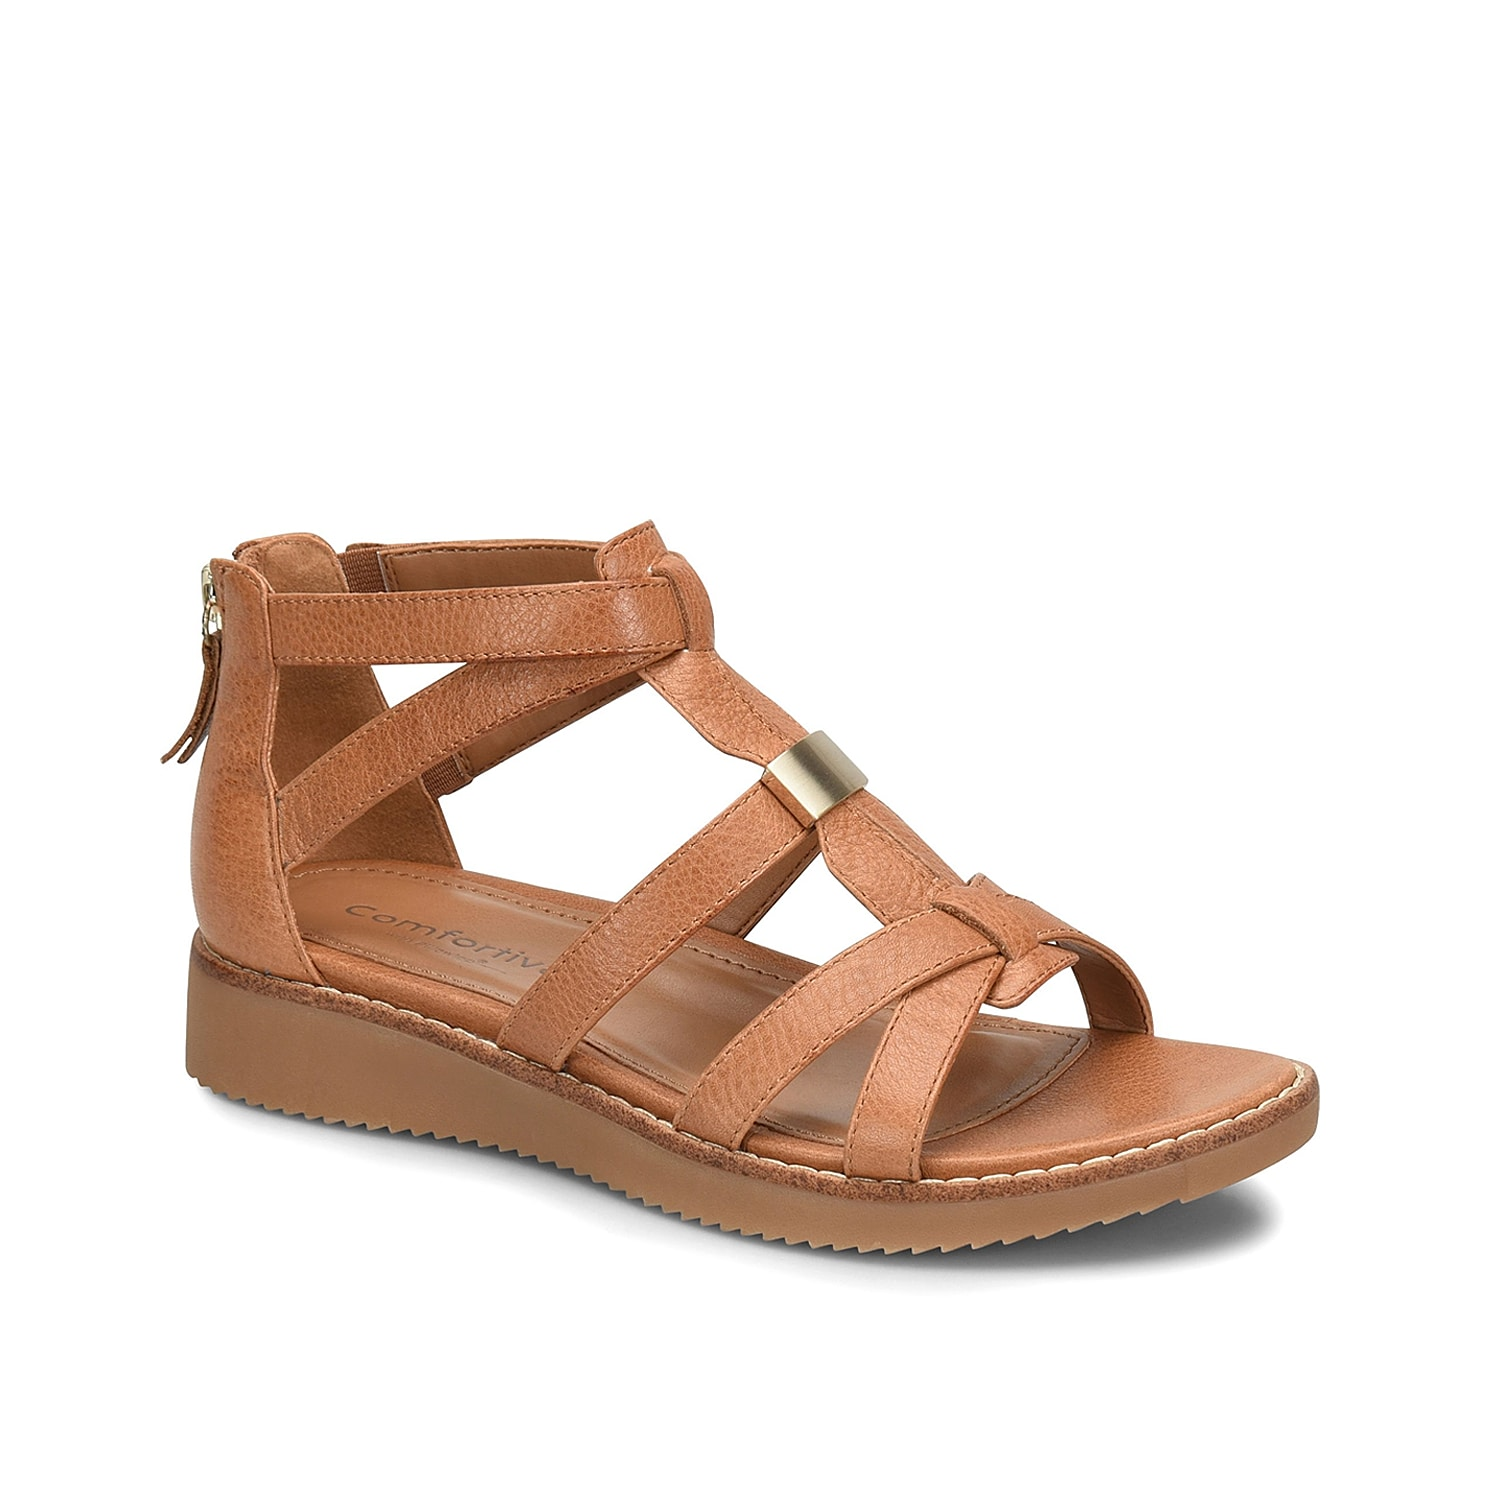 The Wyola gladiator sandal from Comfortivia will be your perfect companion all season long. This silhouette is fashioned with a leather construction and a low, EVA midsole that will give your steps a little lift!